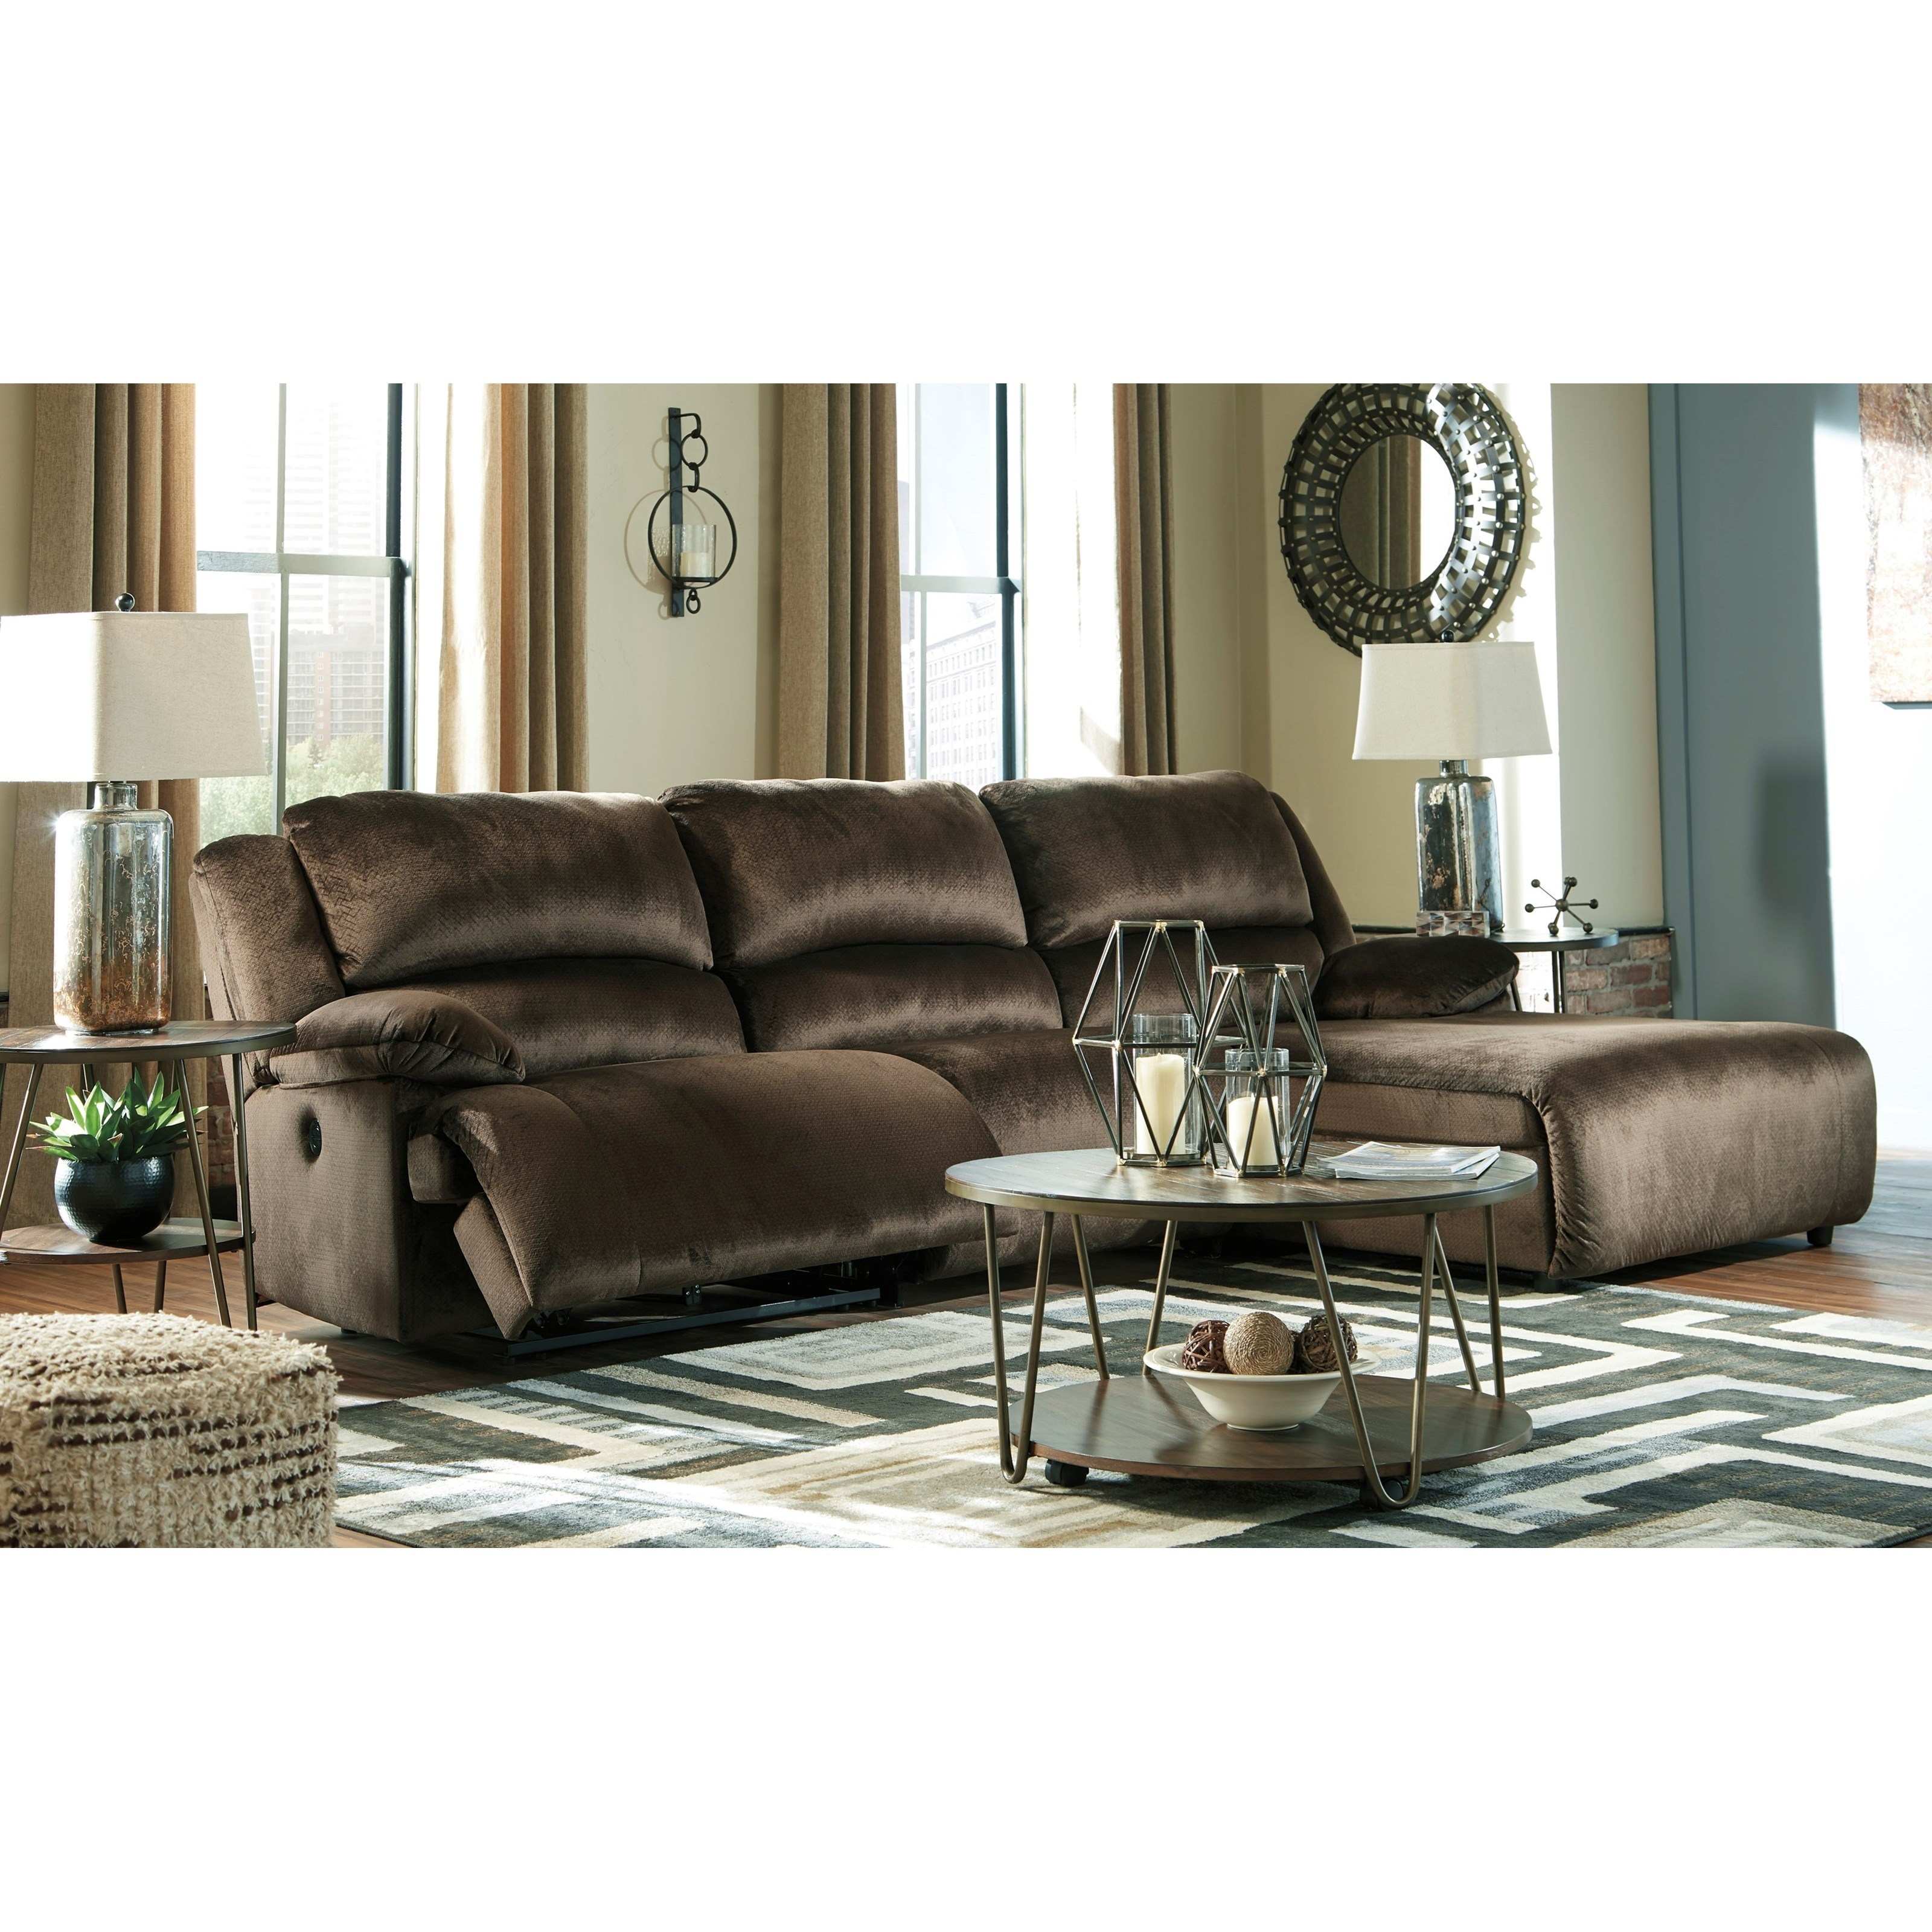 Picture of: Signature Design By Ashley Clonmel Reclining Sectional With Pressback Chaise Royal Furniture Reclining Sectional Sofas